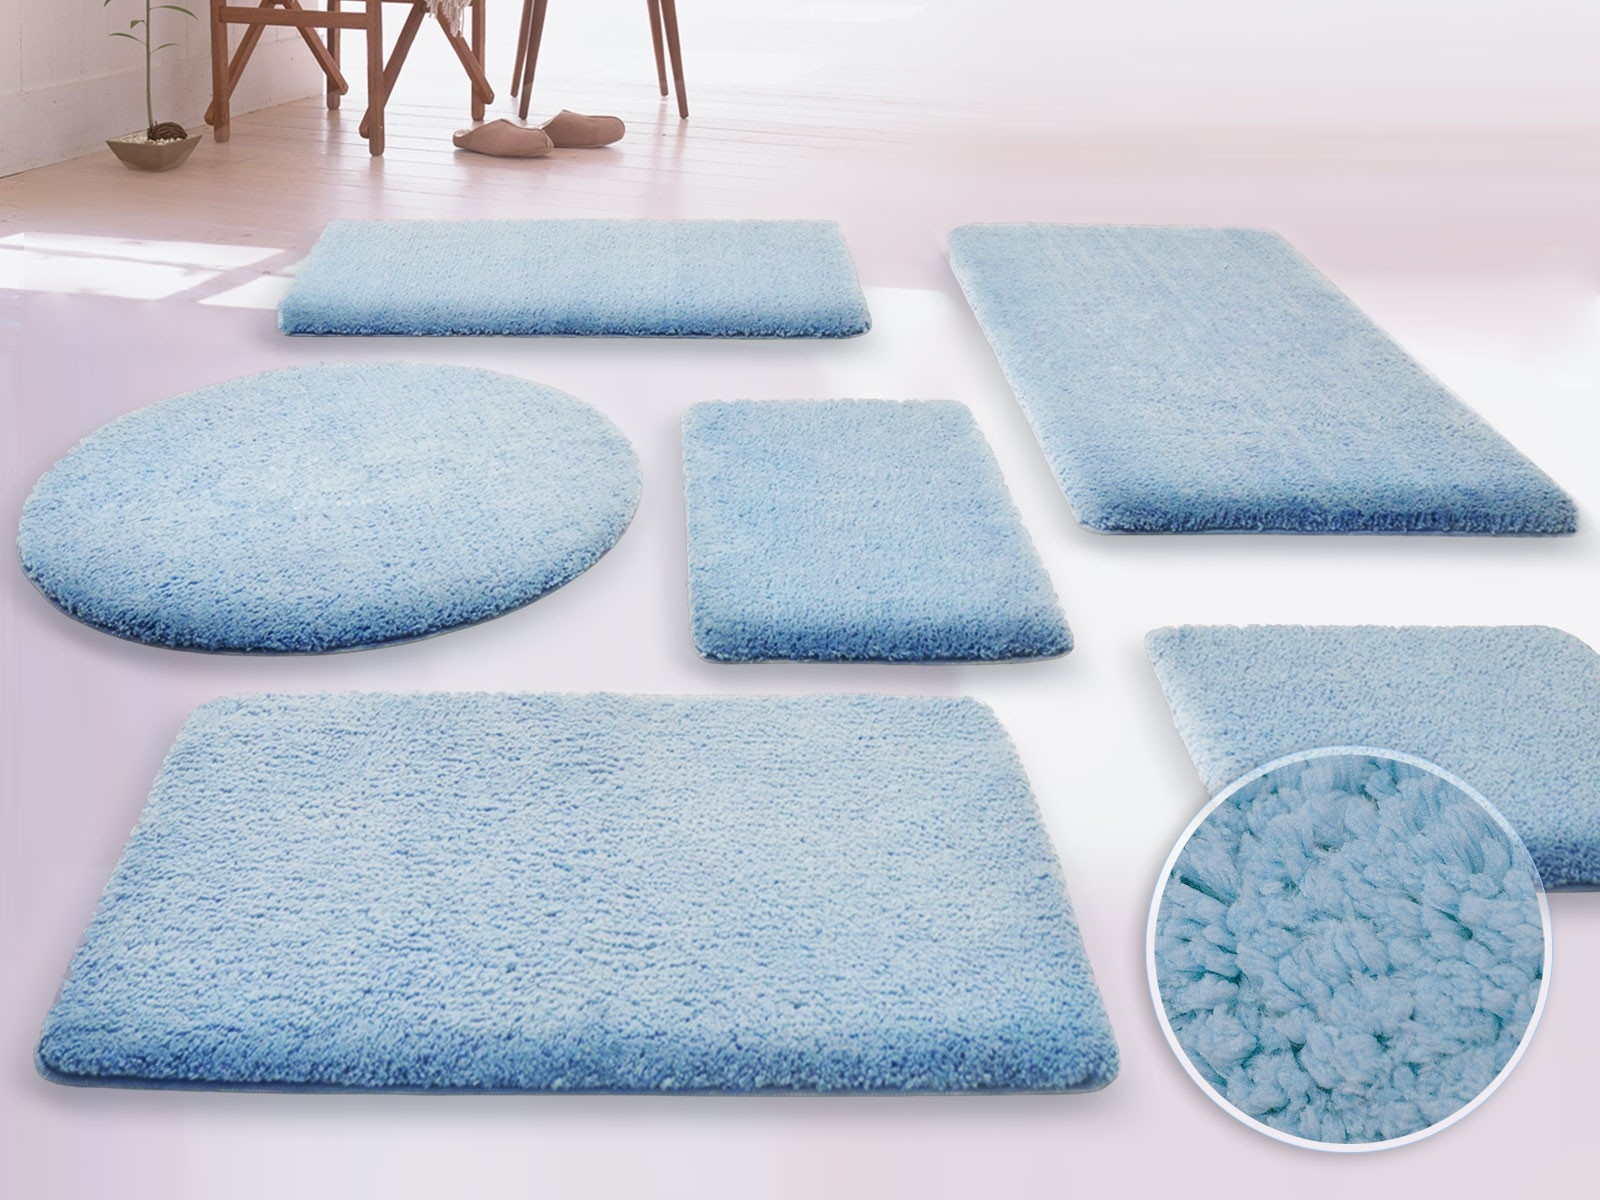 Permalink to Small Bathroom Rugs And Mats